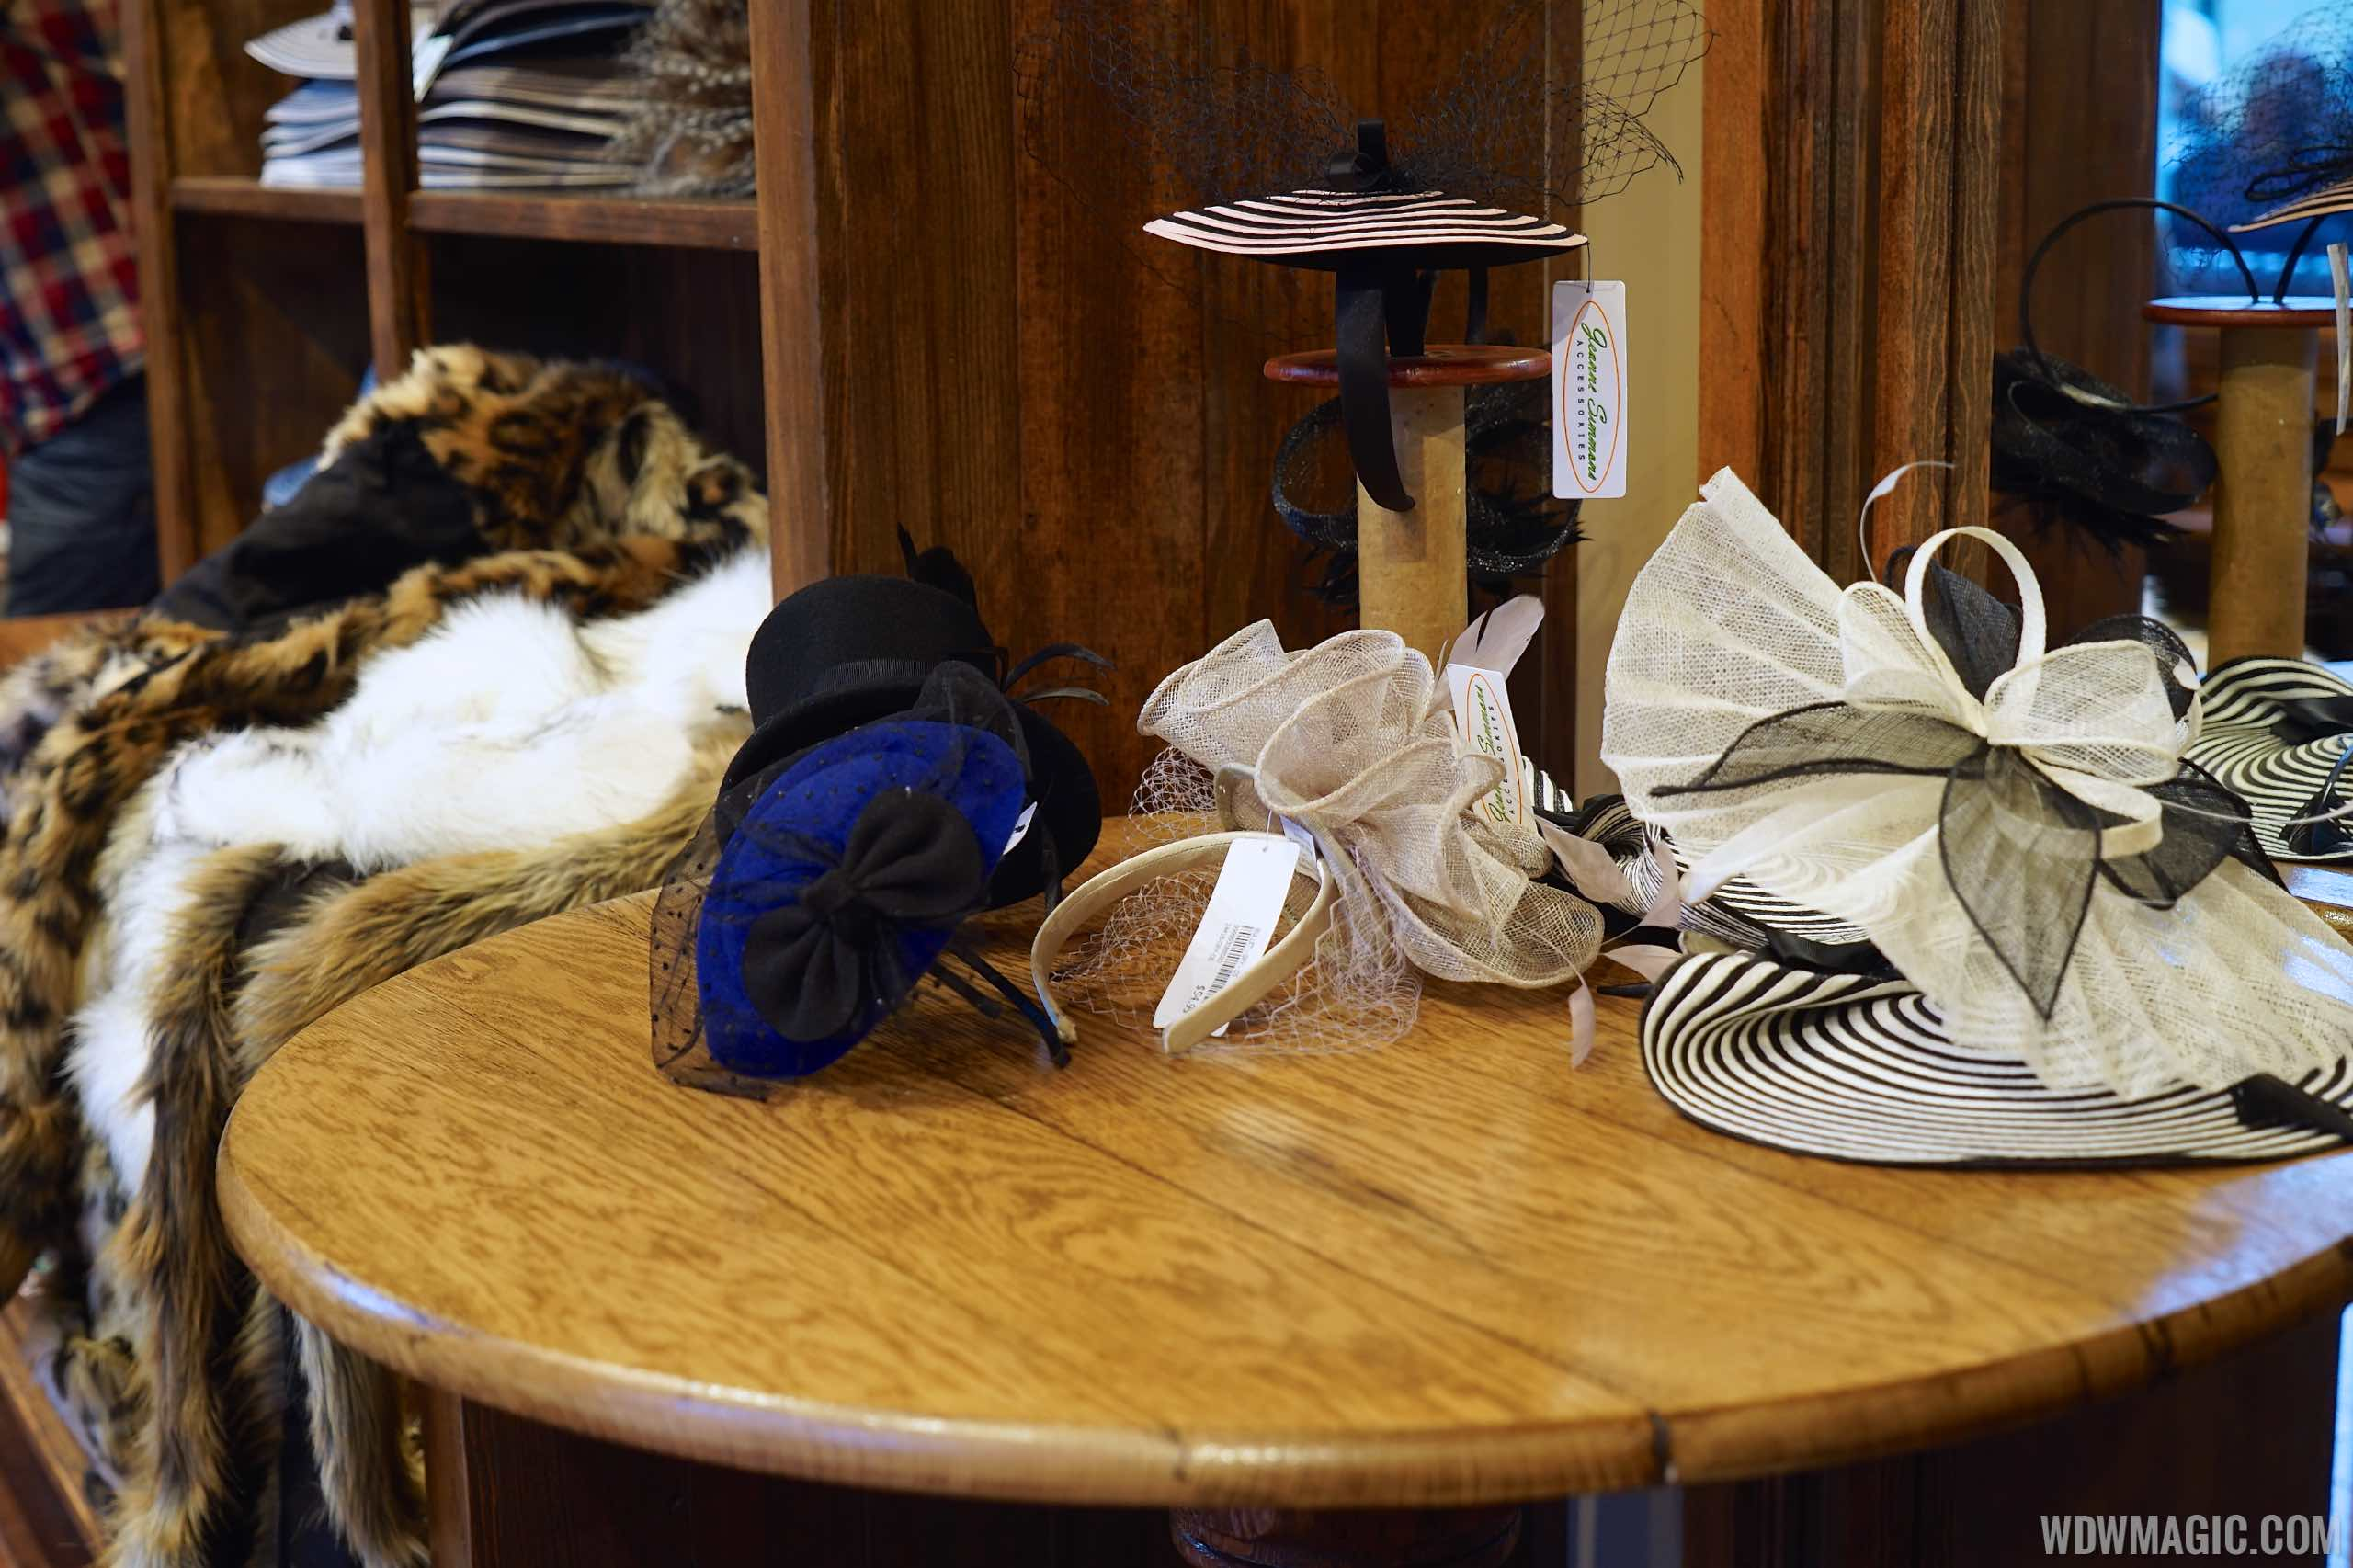 Chapel Hats - Hat display